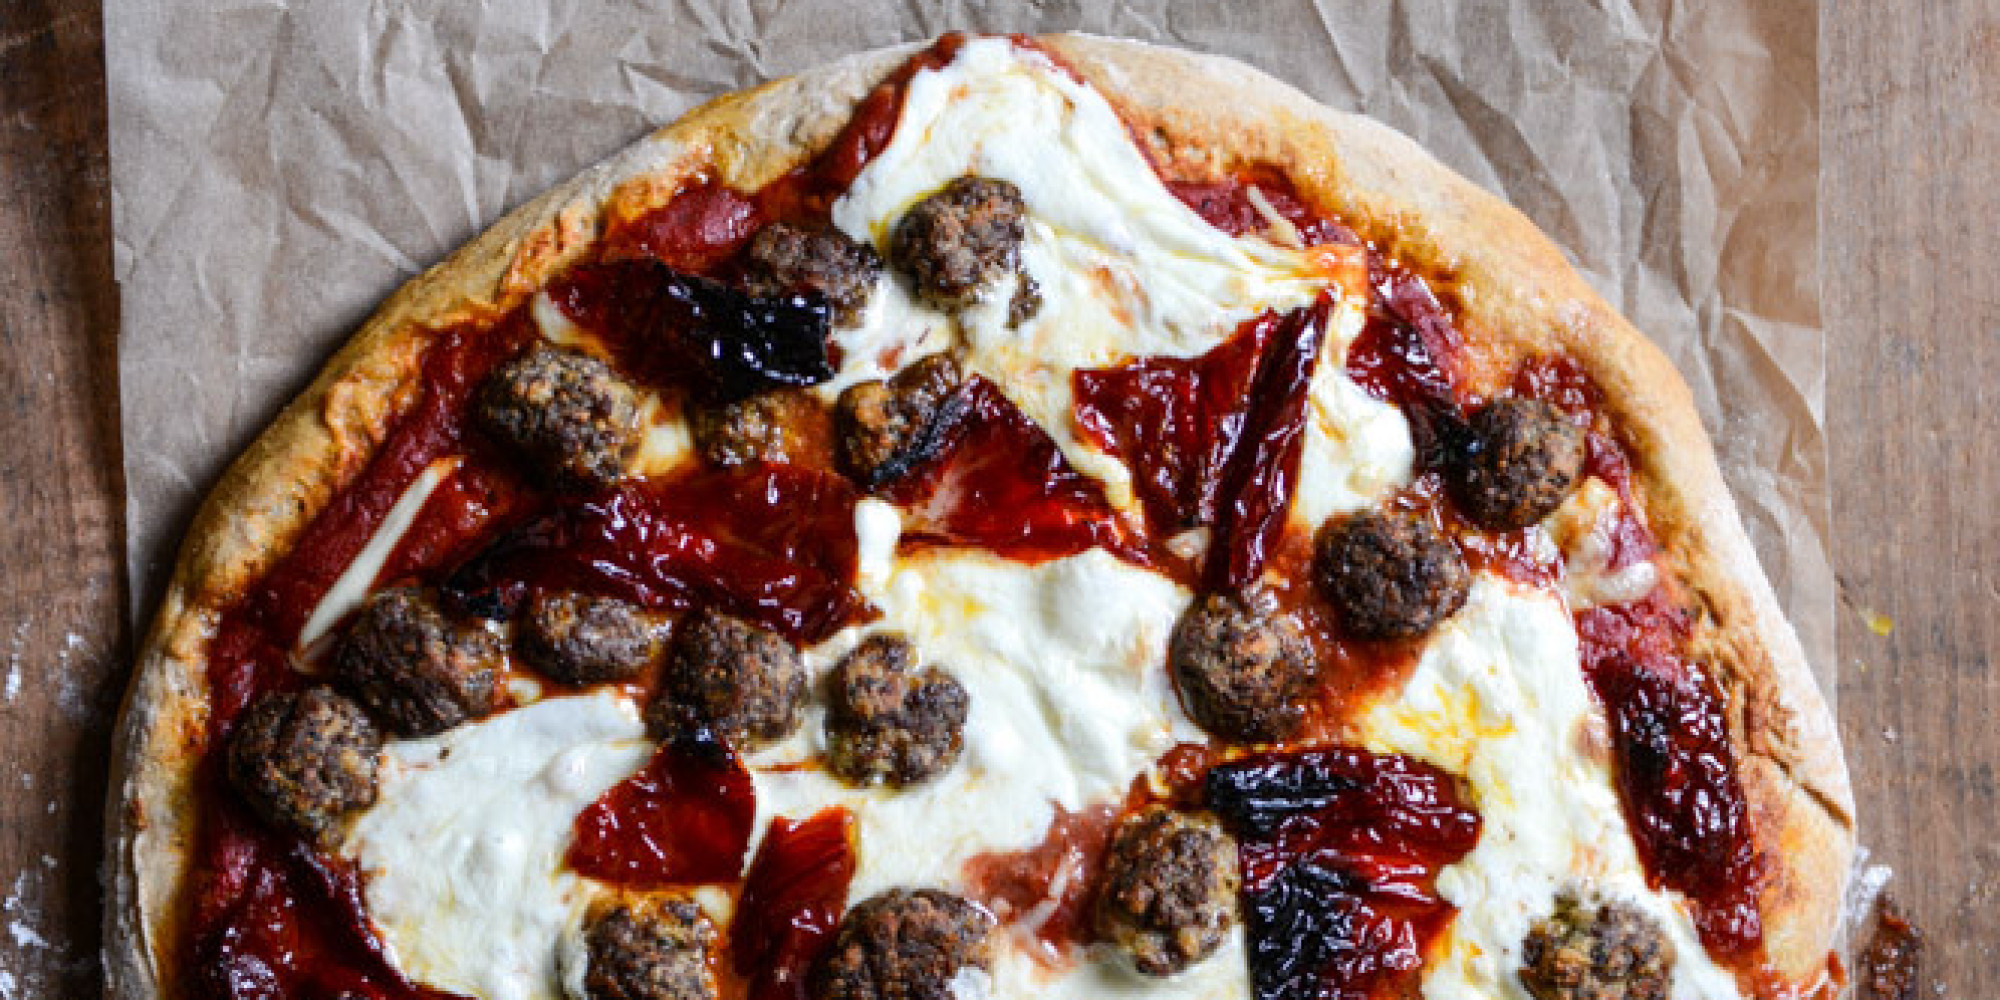 30 recipes you should know how to cook by the time youre 30 huffpost forumfinder Choice Image